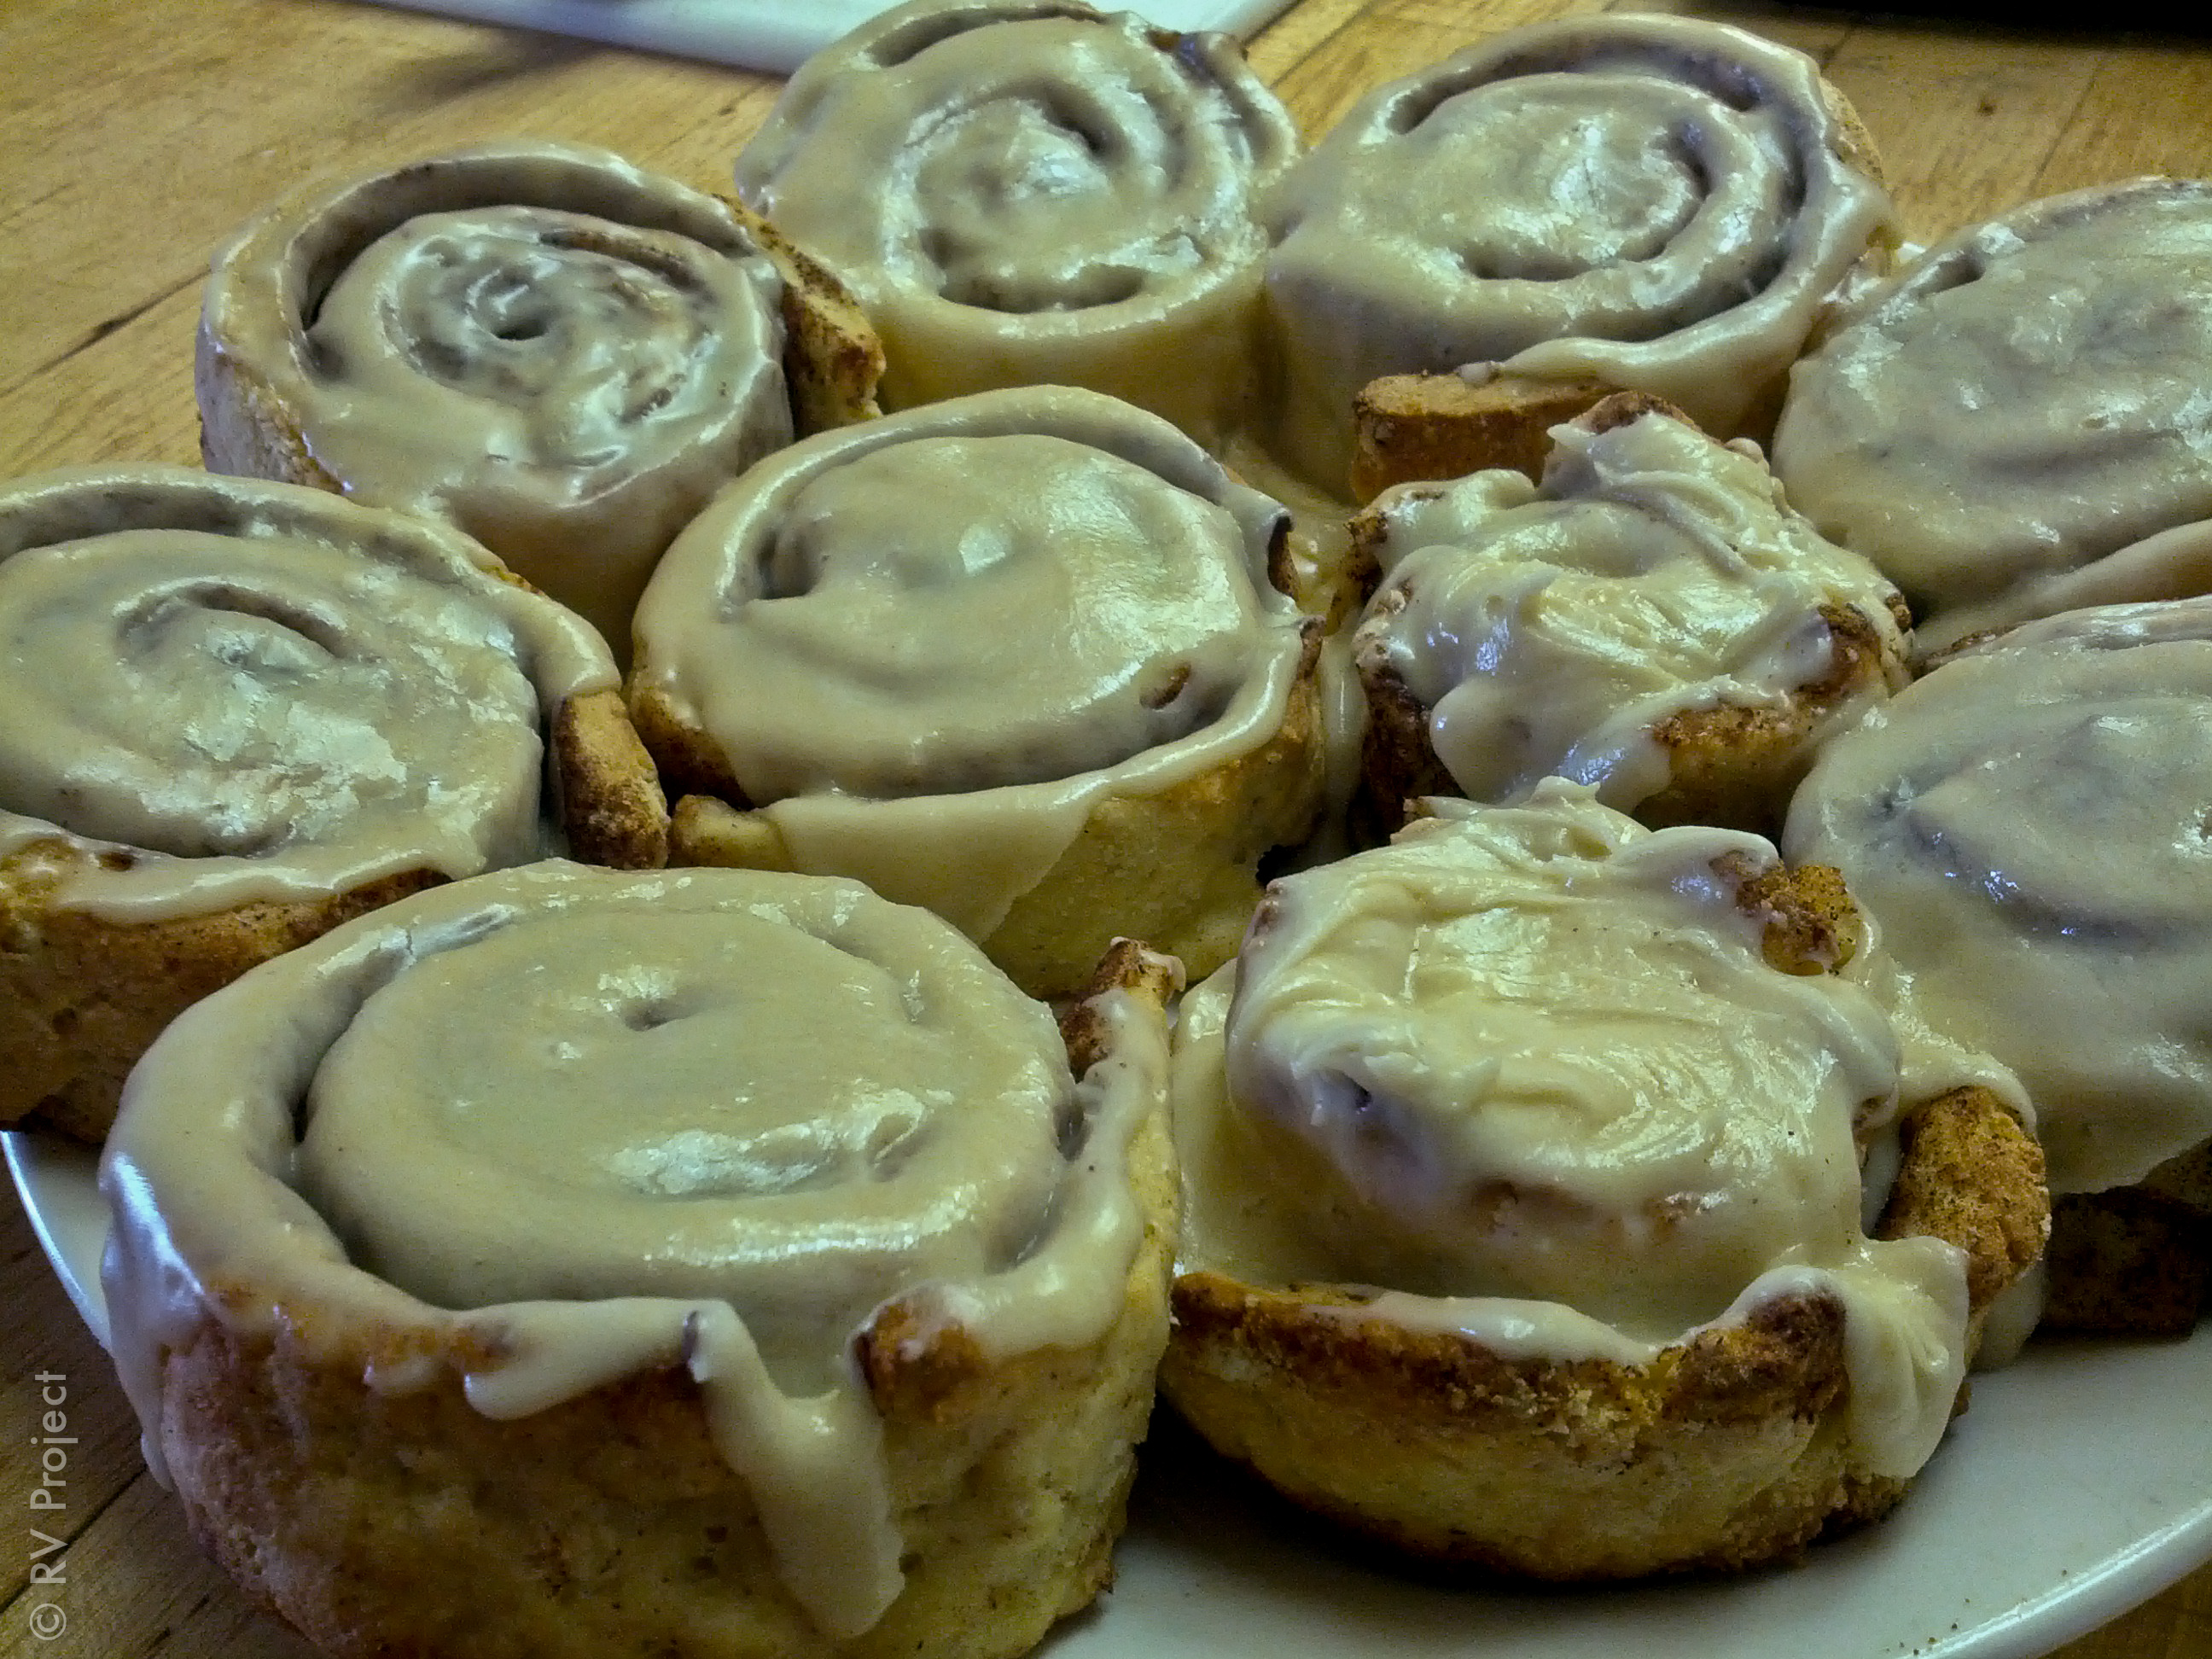 My first stab at making gluten-free cinnamon rolls from scratch! I took full advantage of the oven at the Zoo.